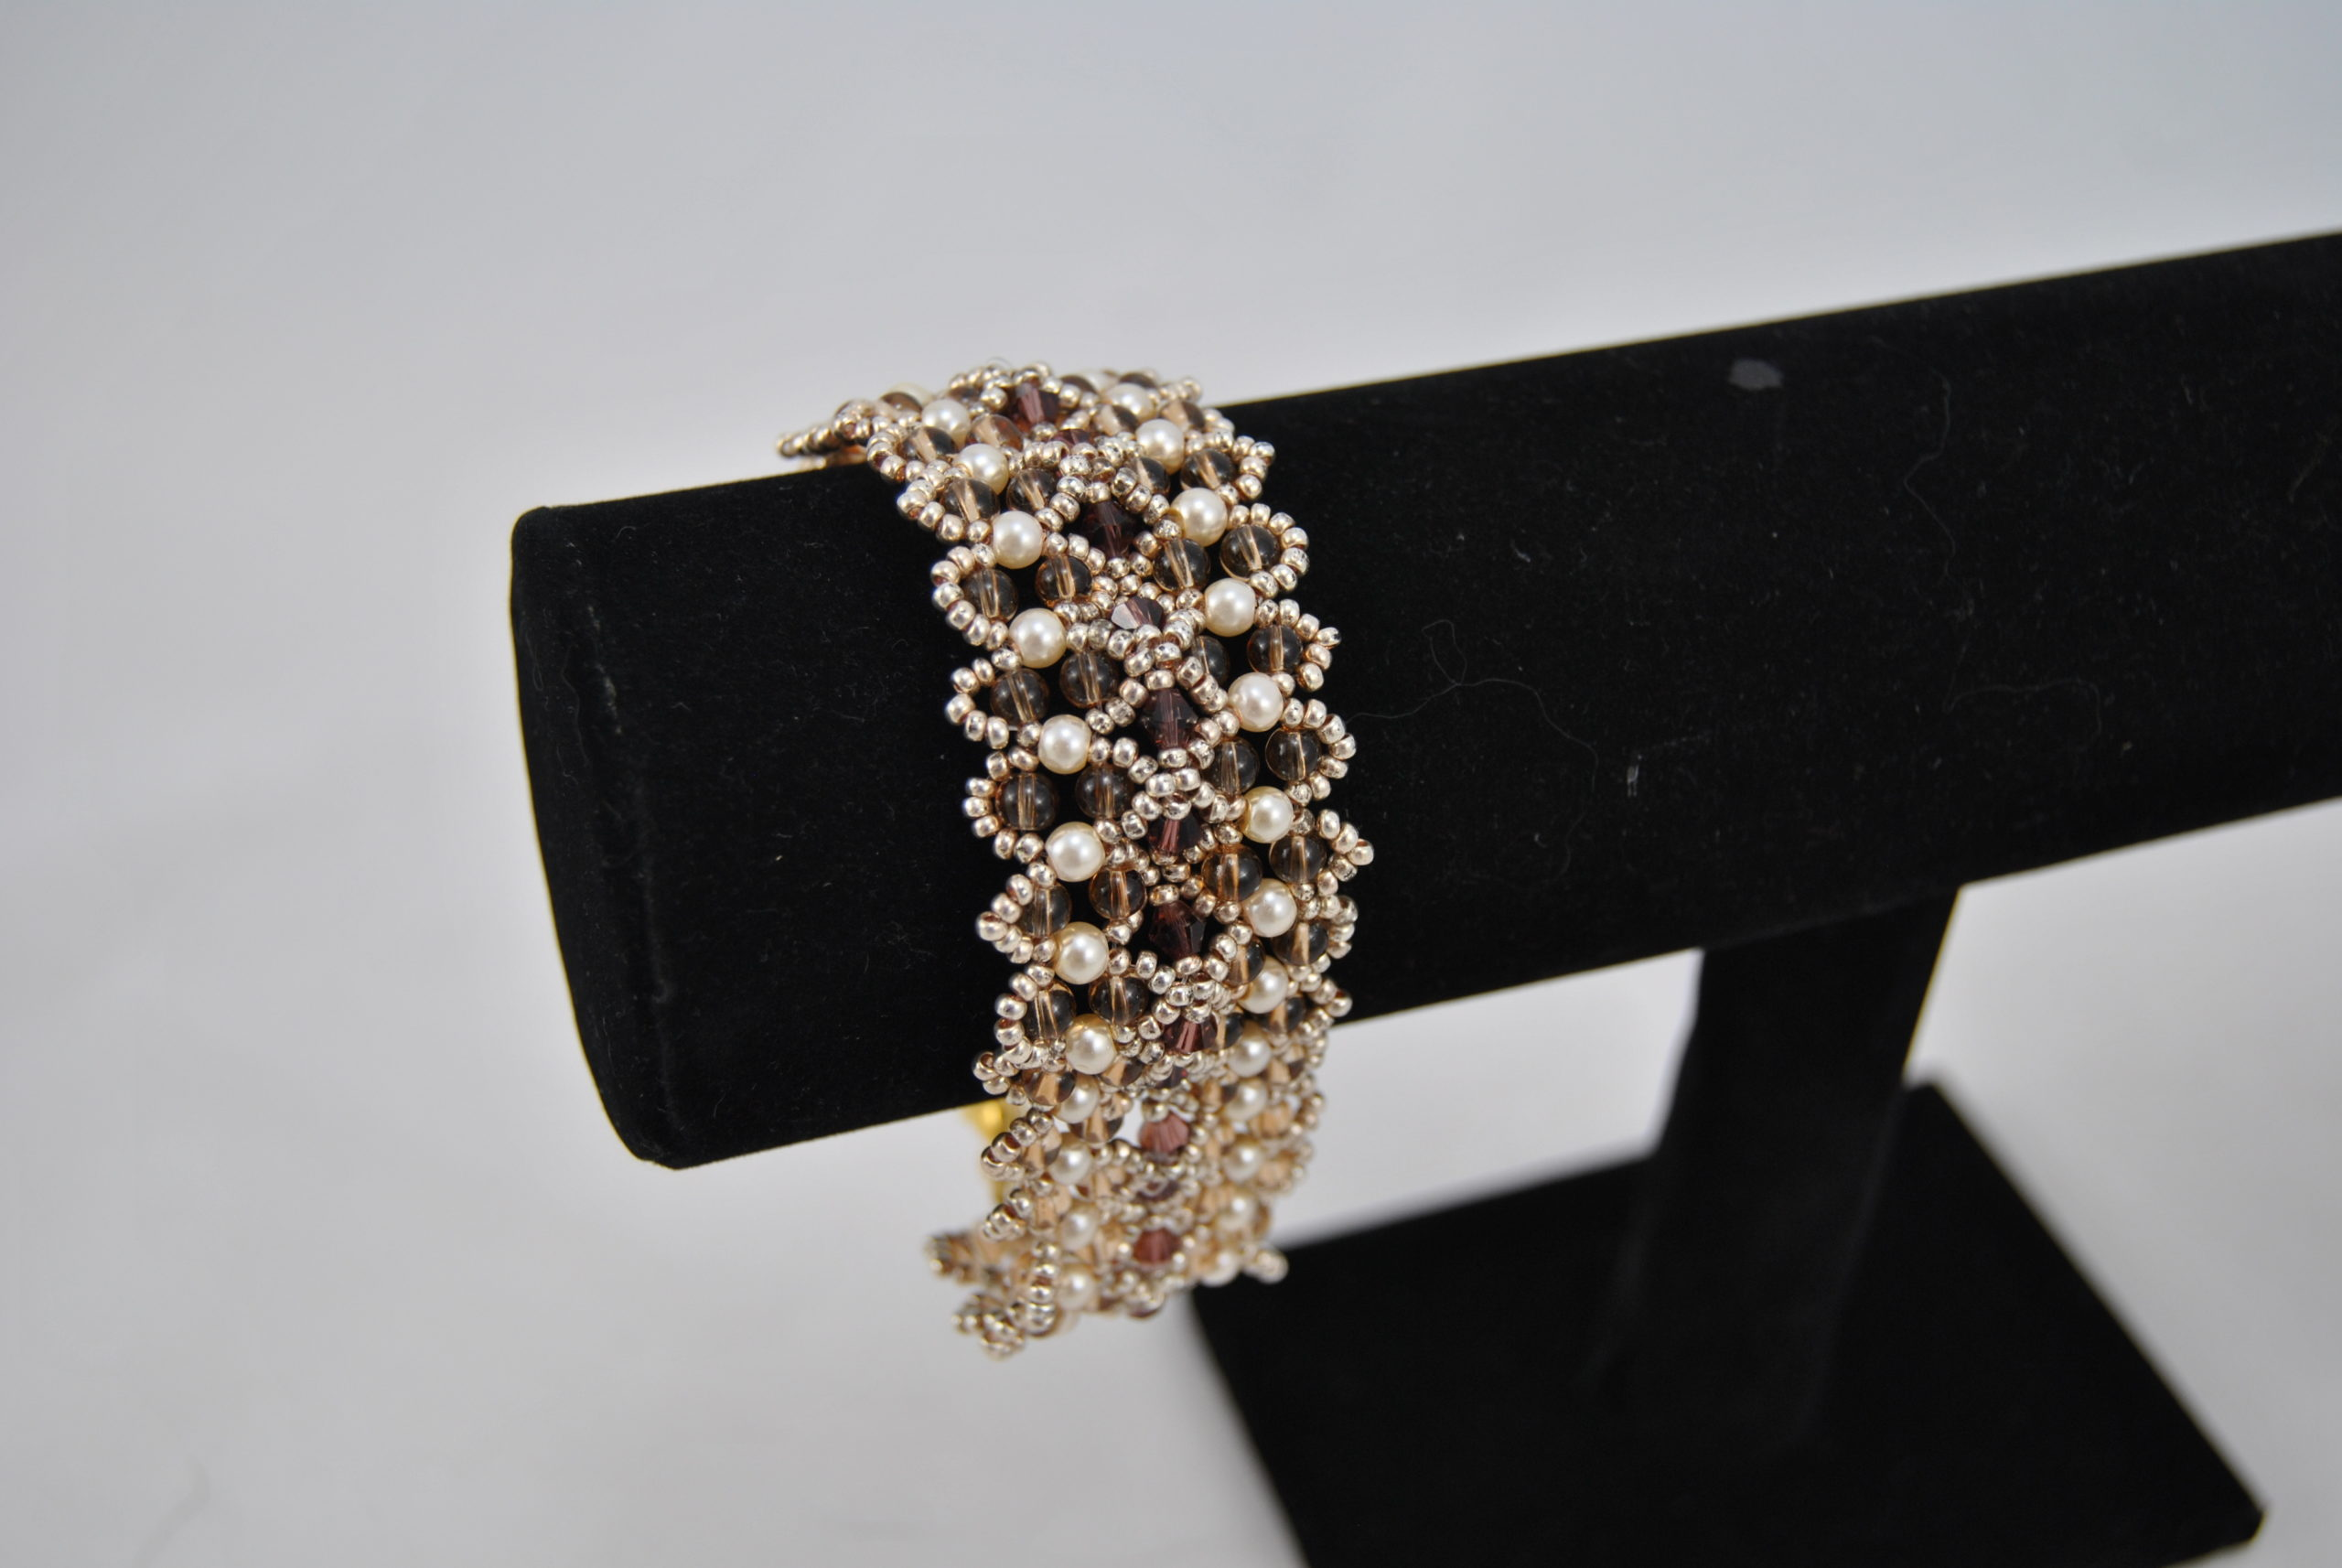 Gold Seed Beads Cream Pearls Topaz Beads Extra Wide Bracelet